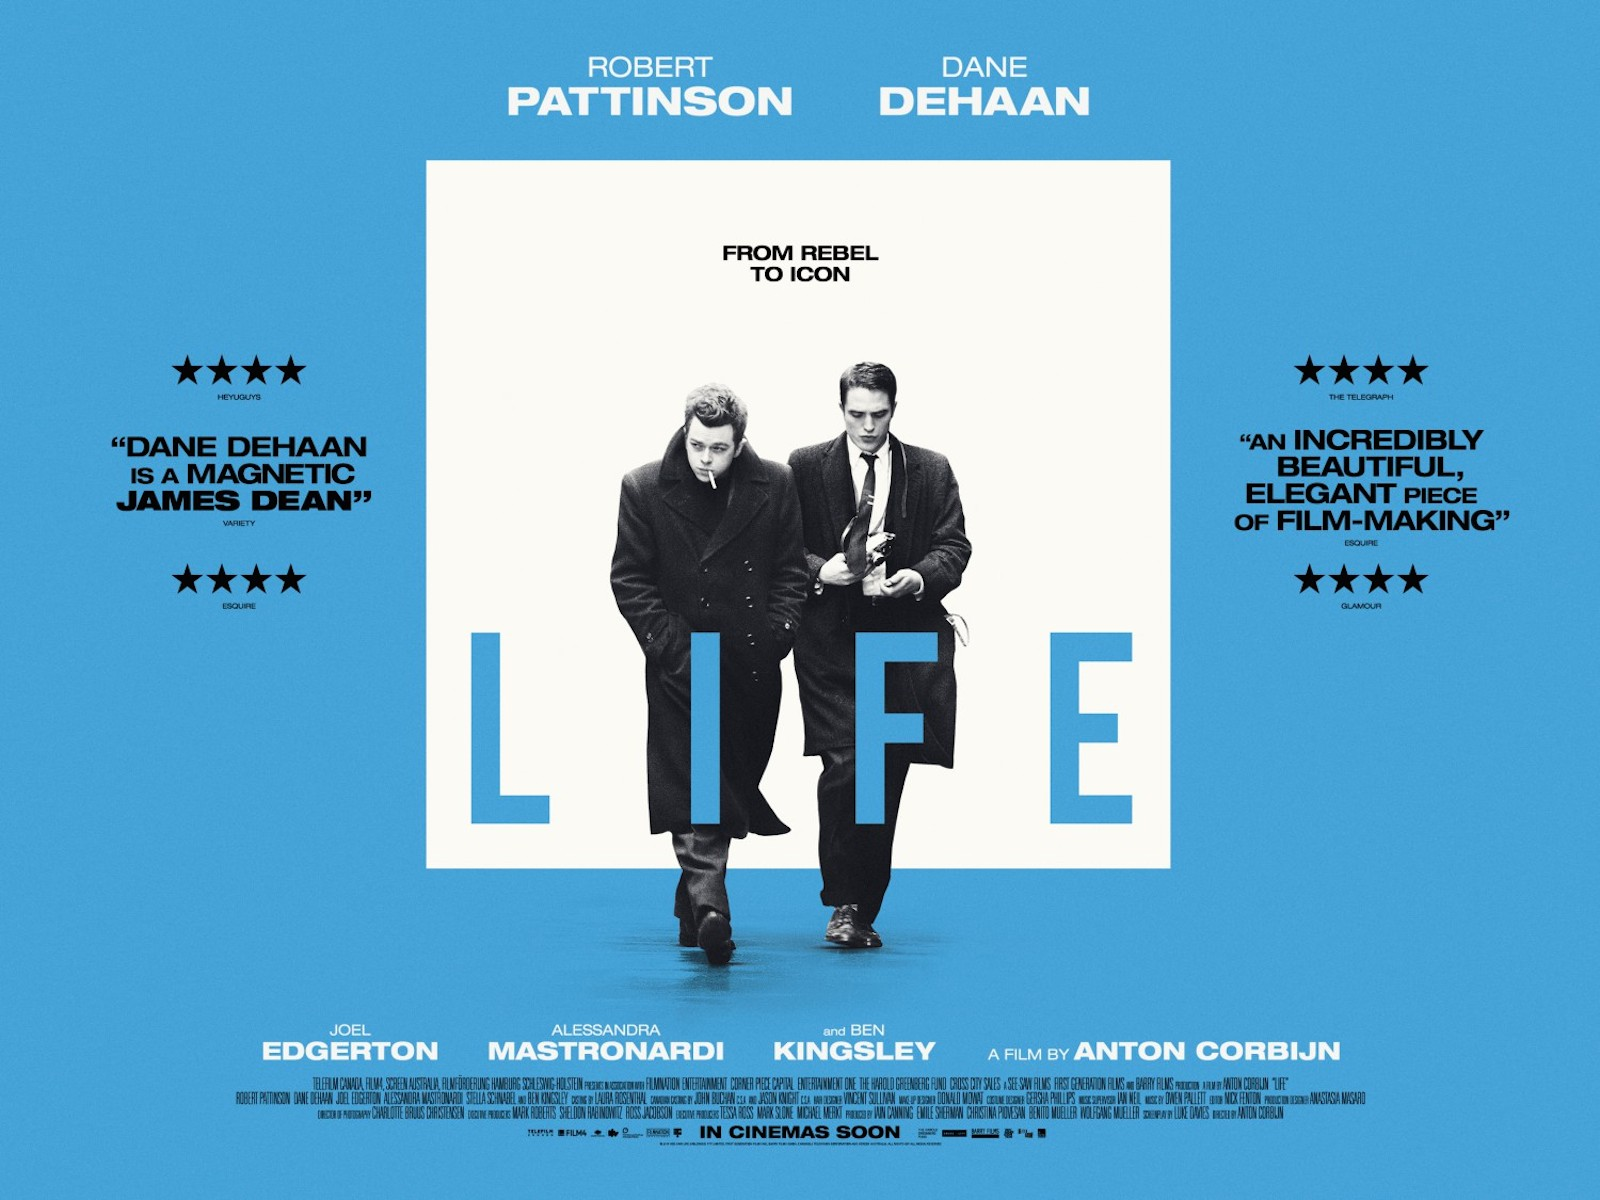 LIFE film directed by ANTON CORBIJN